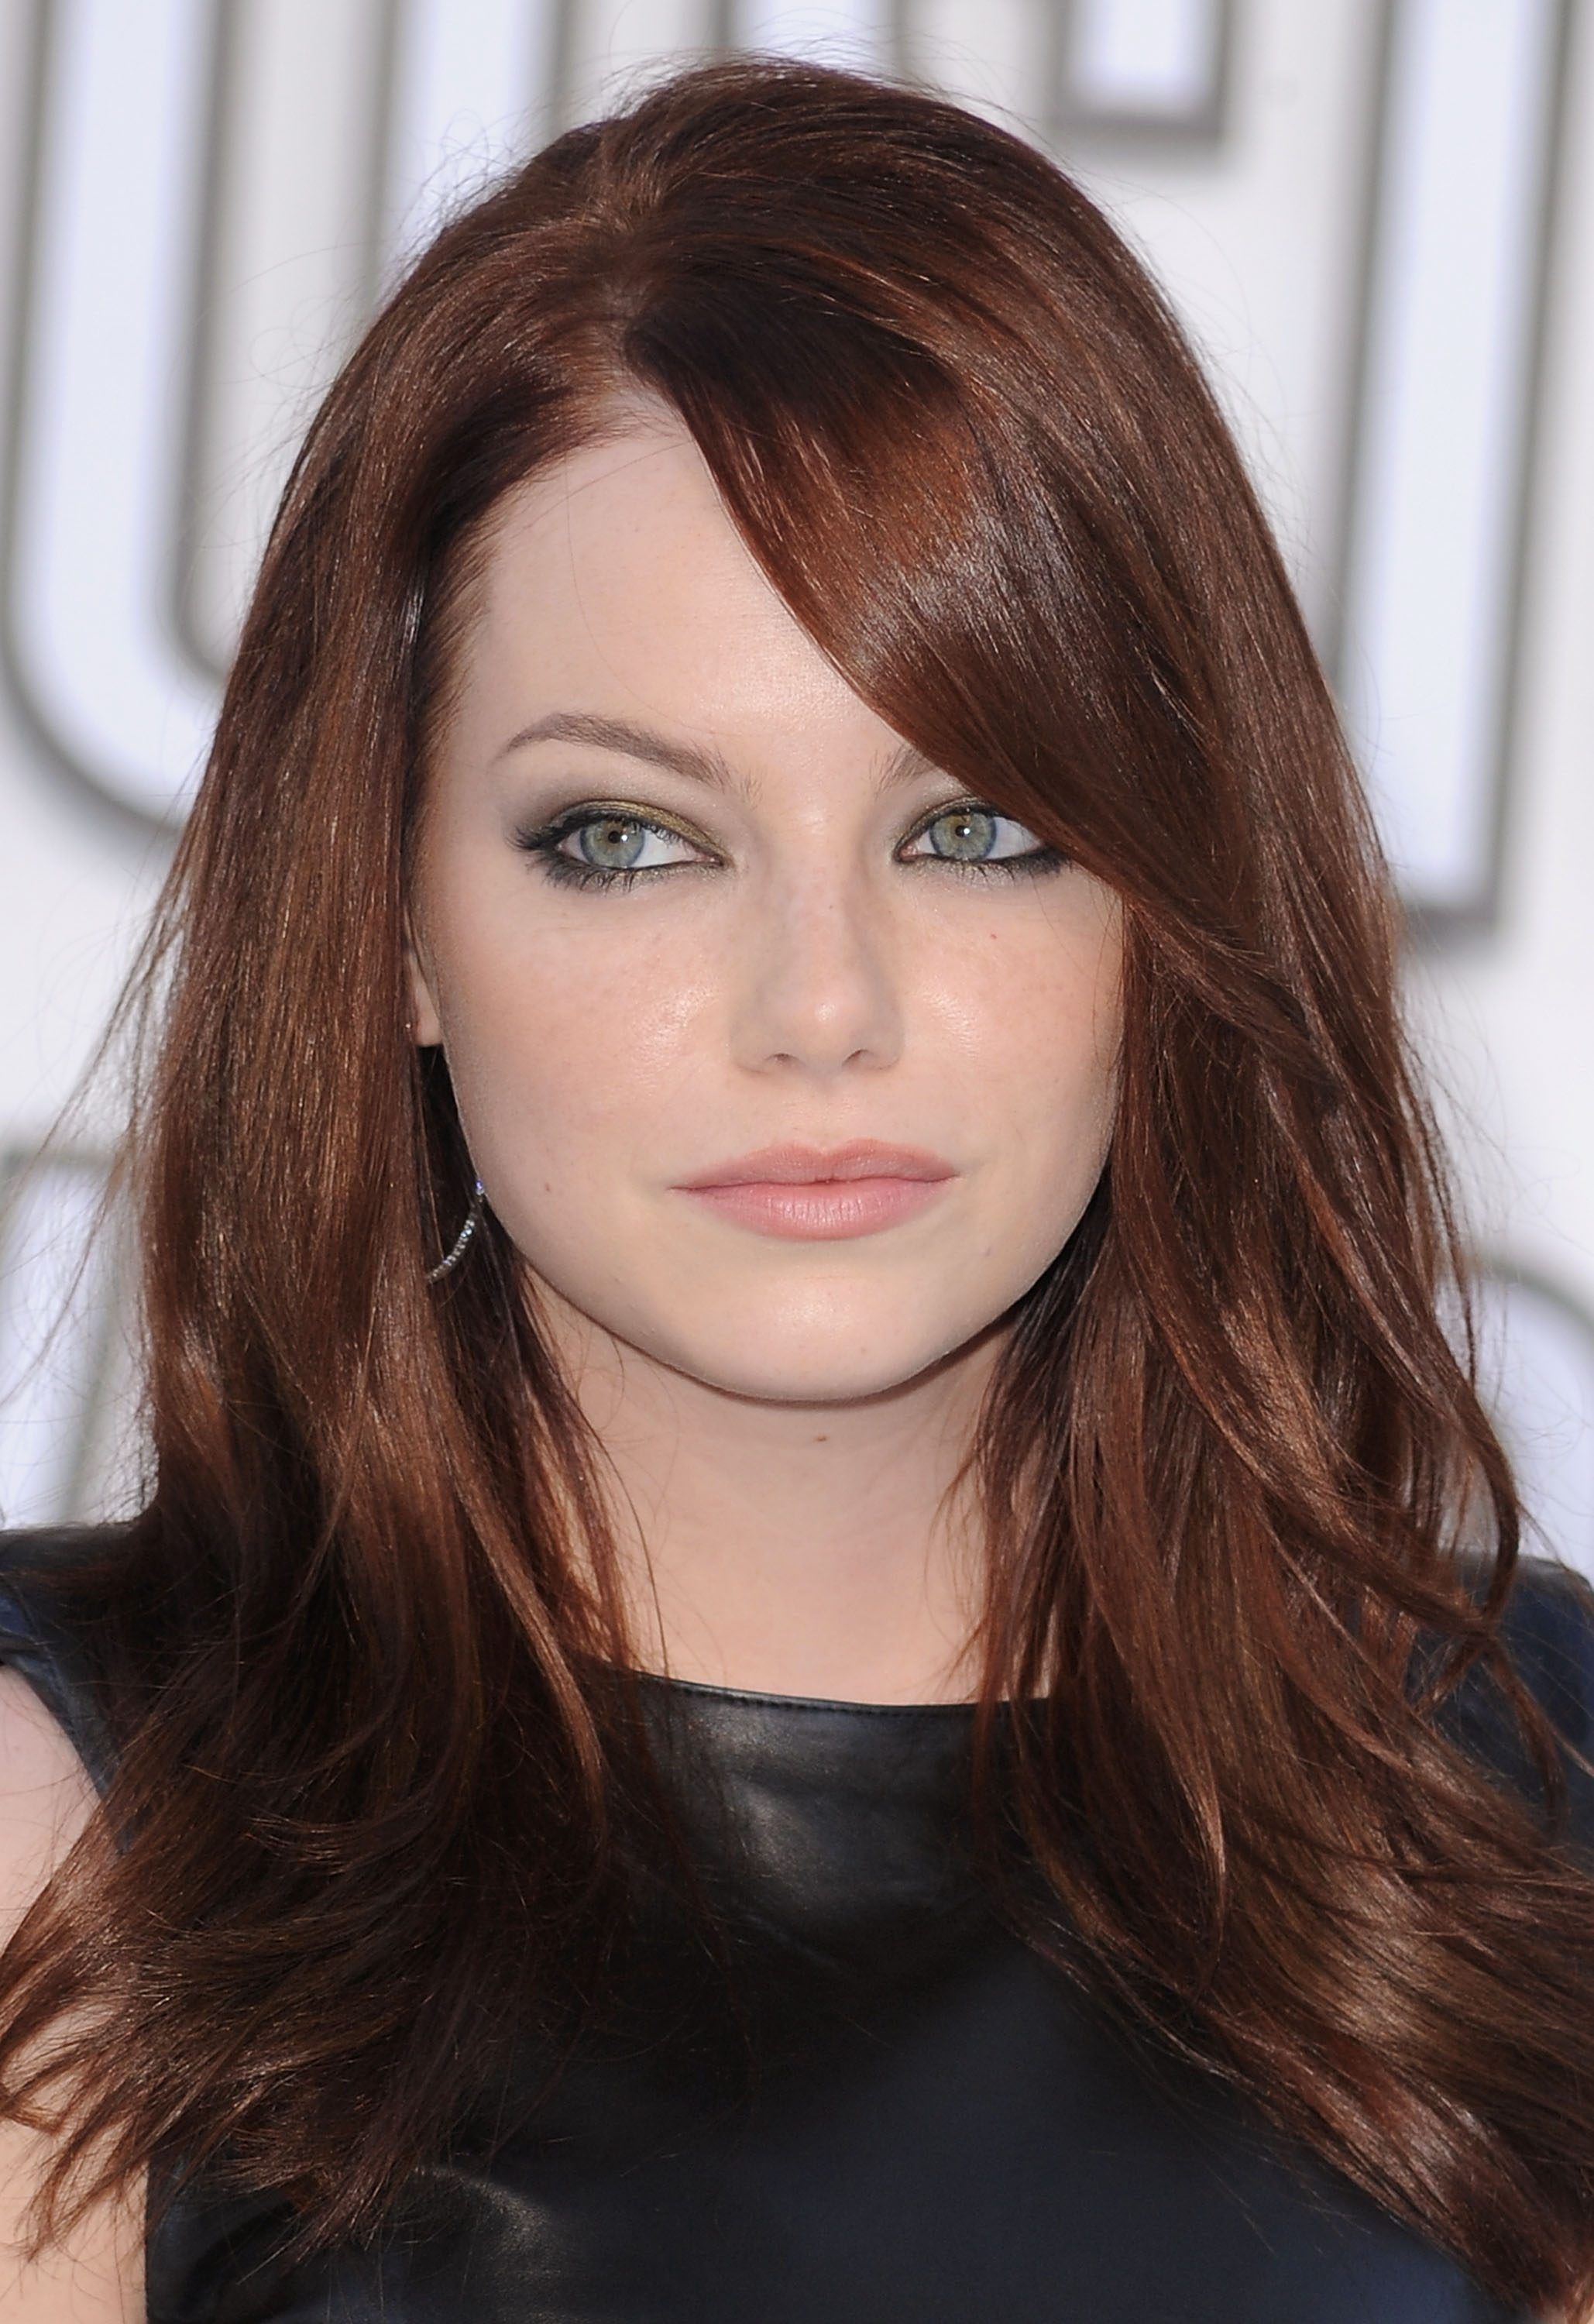 Emma stone musicupeopleuthings pinterest hair coloring emma